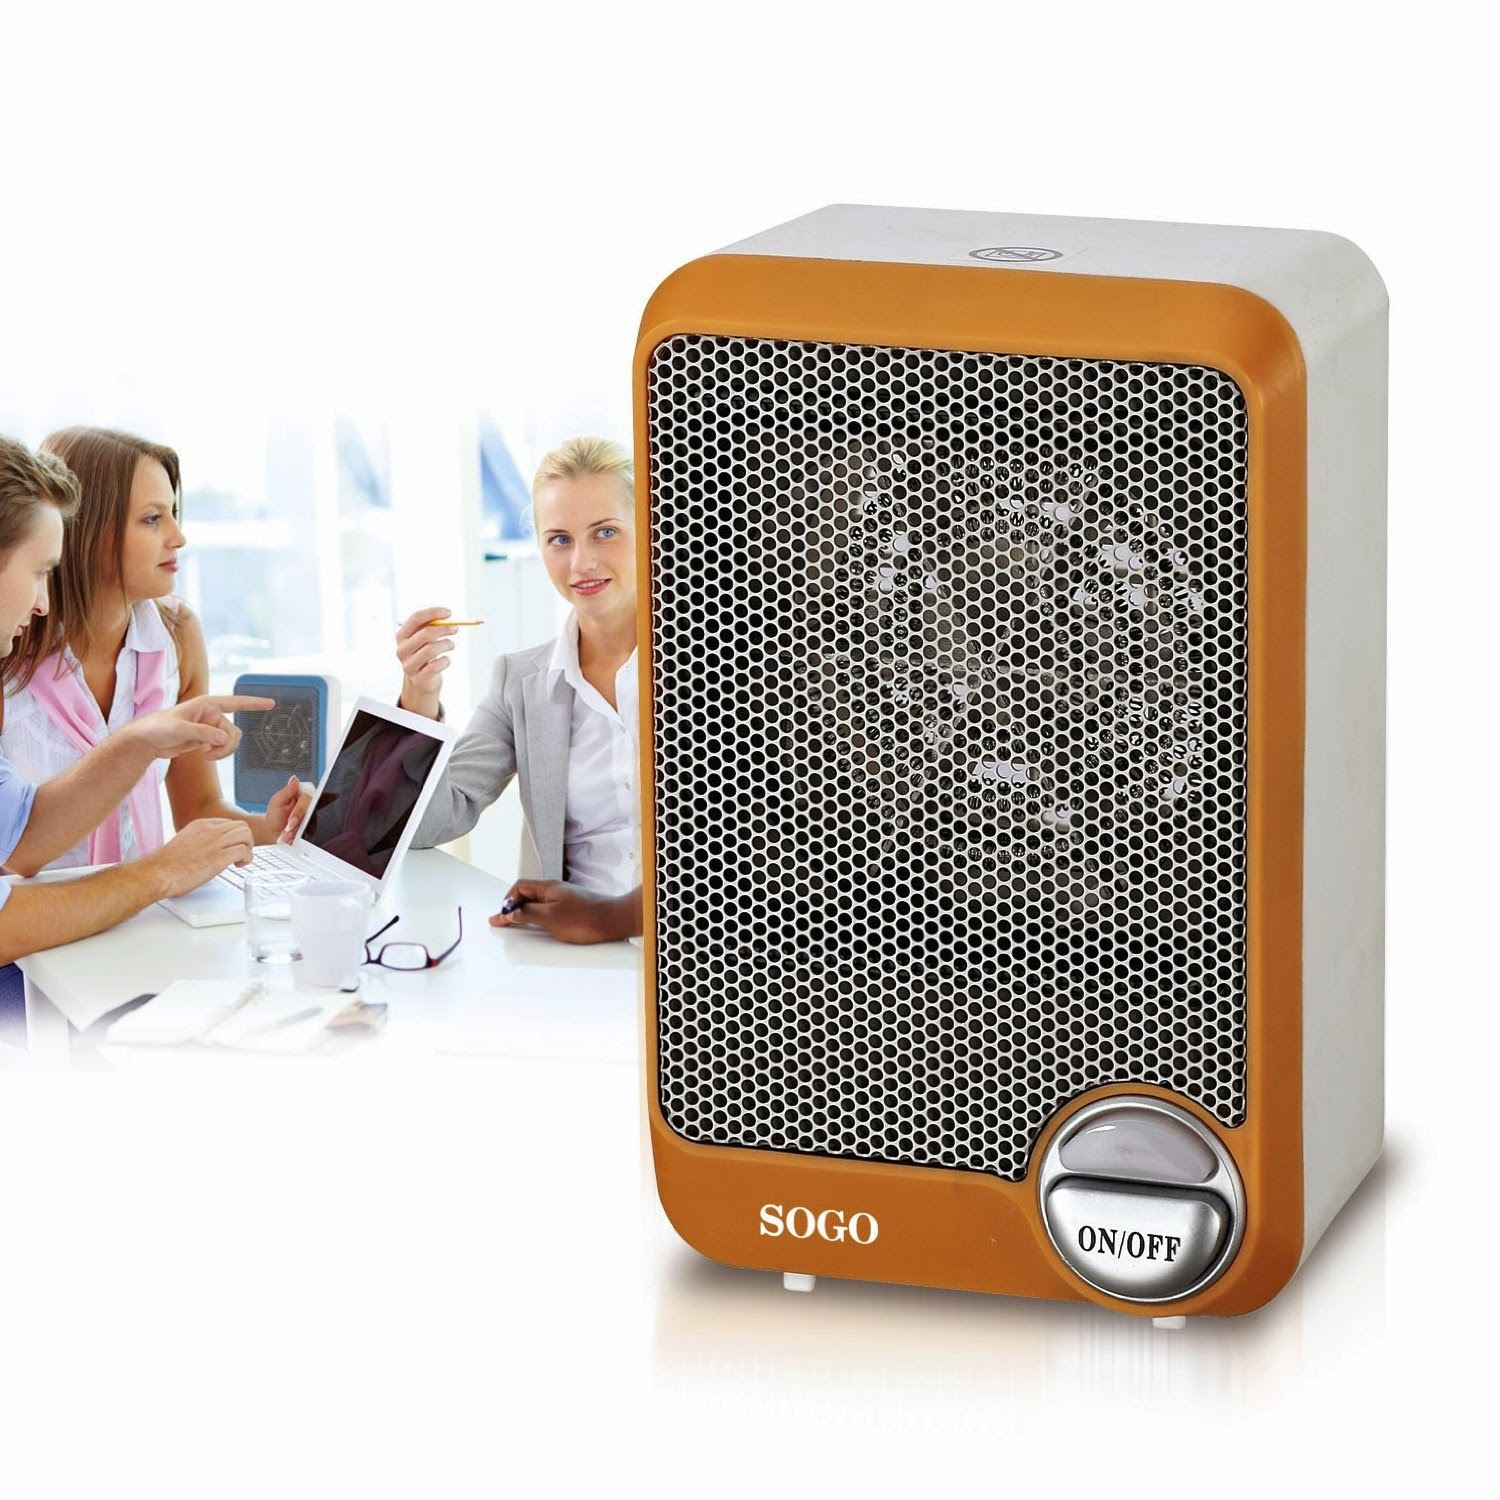 Amazon: Buy SS 18295 Mini Fan Heater at Rs.795